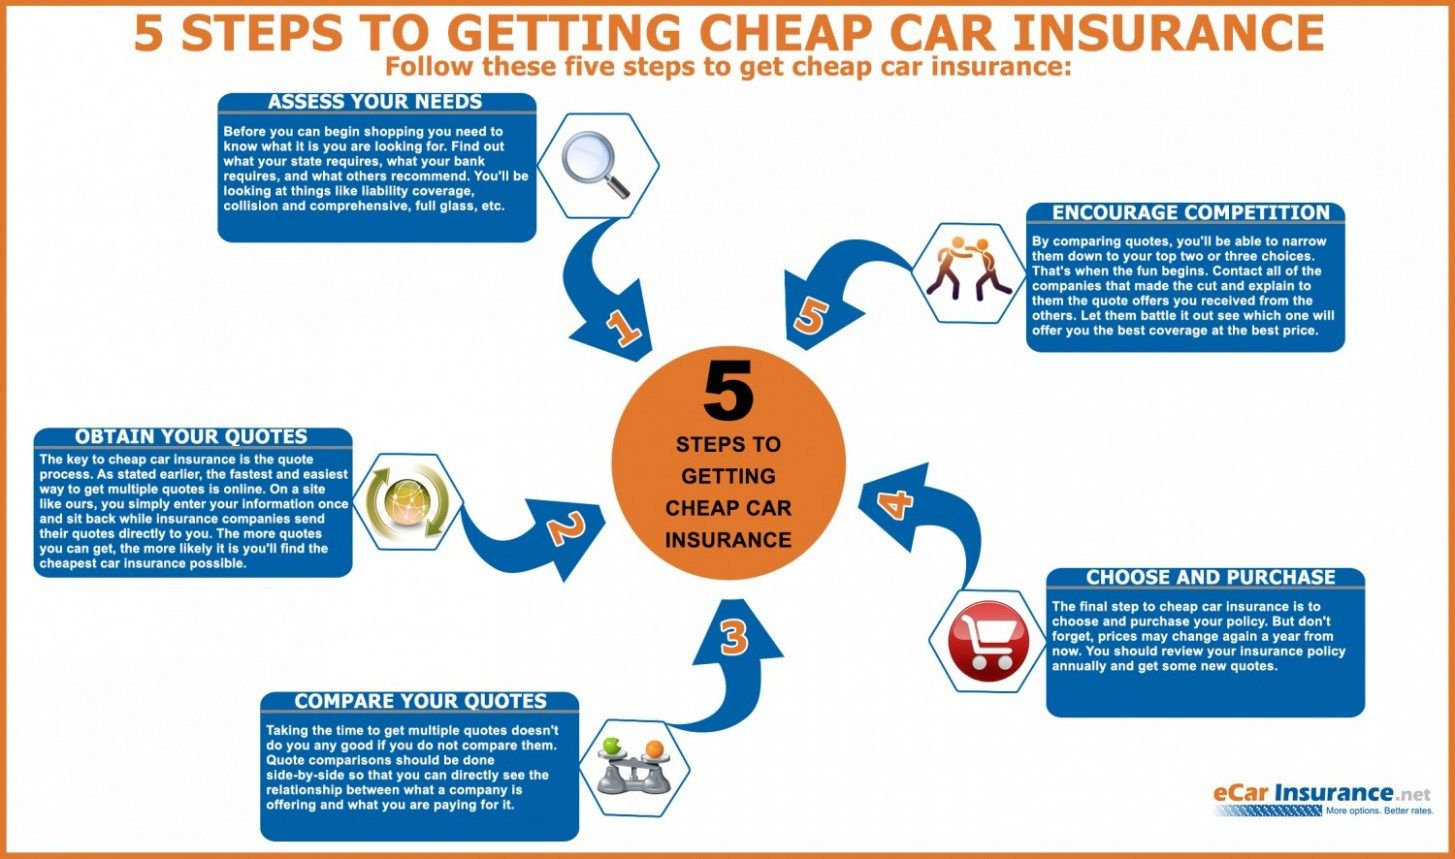 6 Ways On How To Get The Most From This Insurance Quotes Cheap Car Insurance Cheap Car Insurance Quotes Car